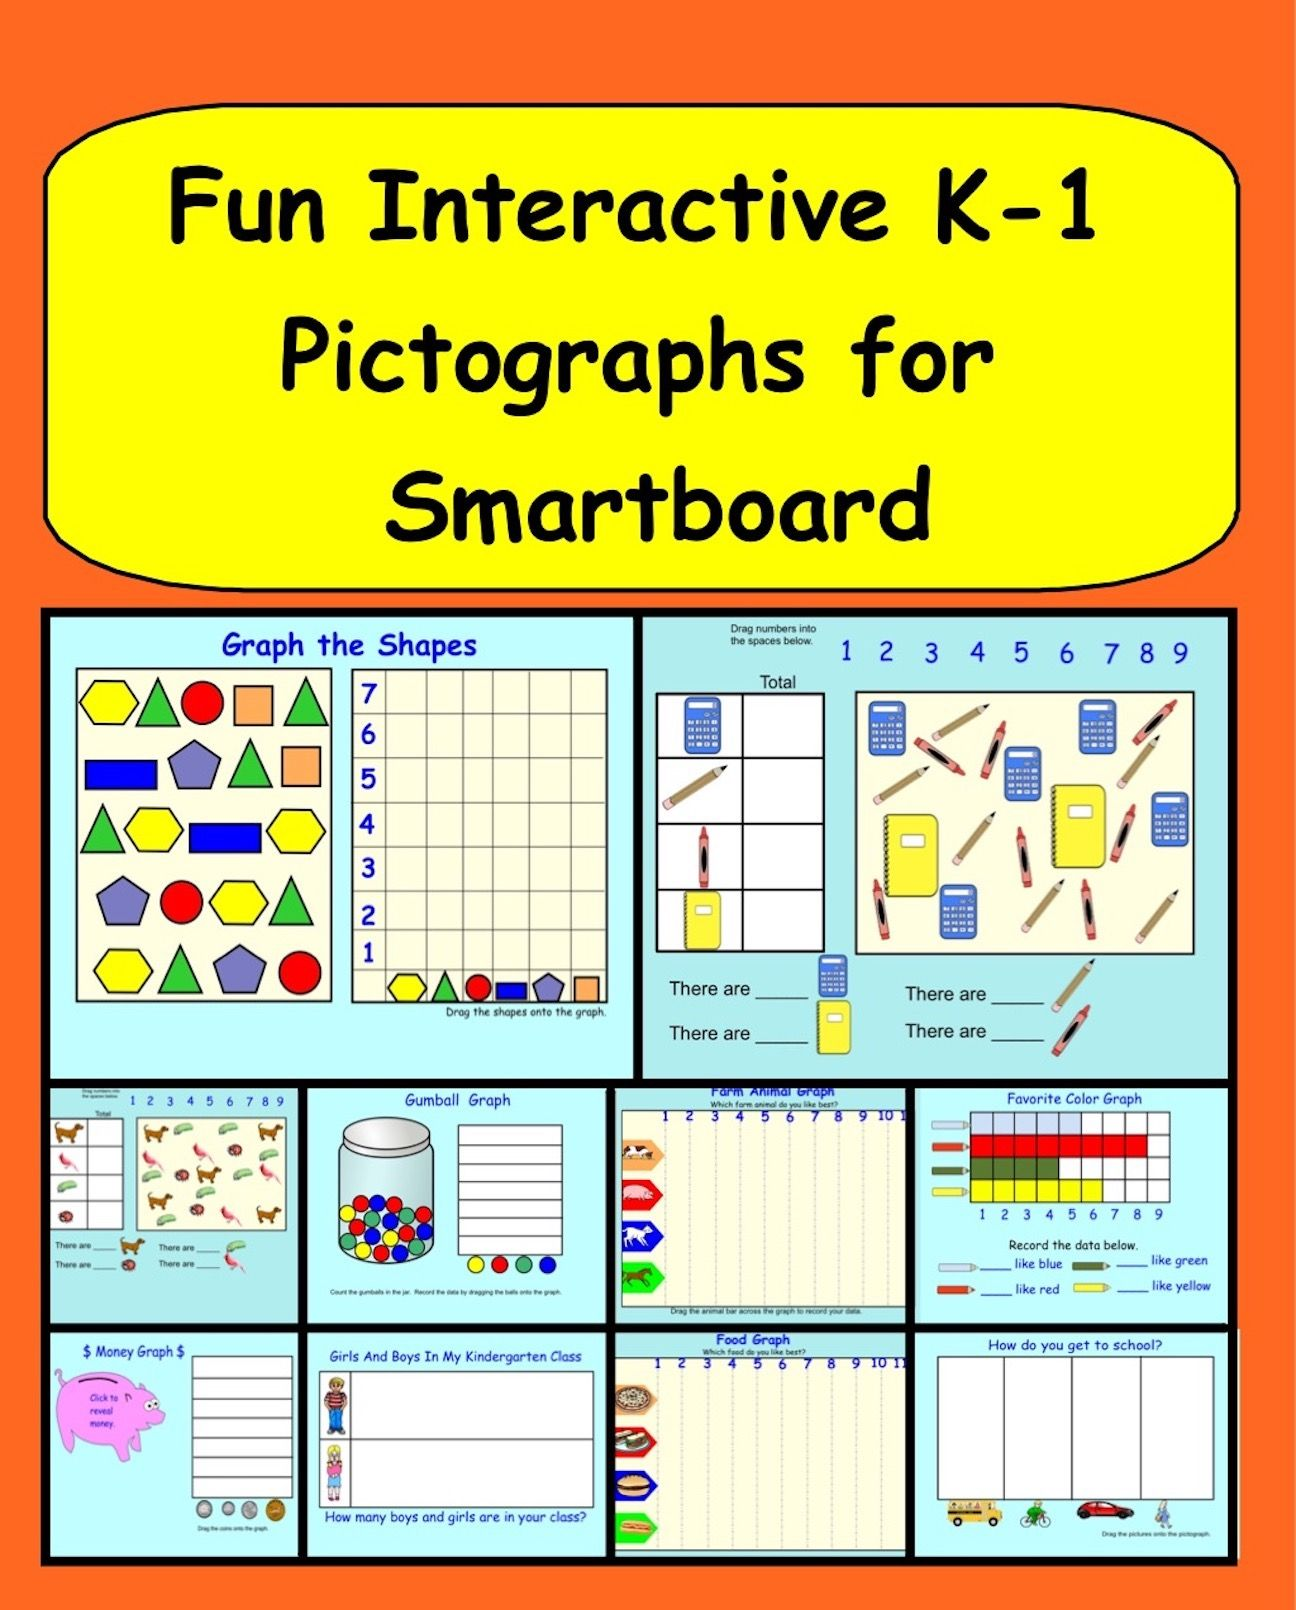 Smartboard Fish Diagram All Kind Of Wiring Diagrams Venn For Interactive Pictographs Gr 1 Rh Pinterest Com 885 Template